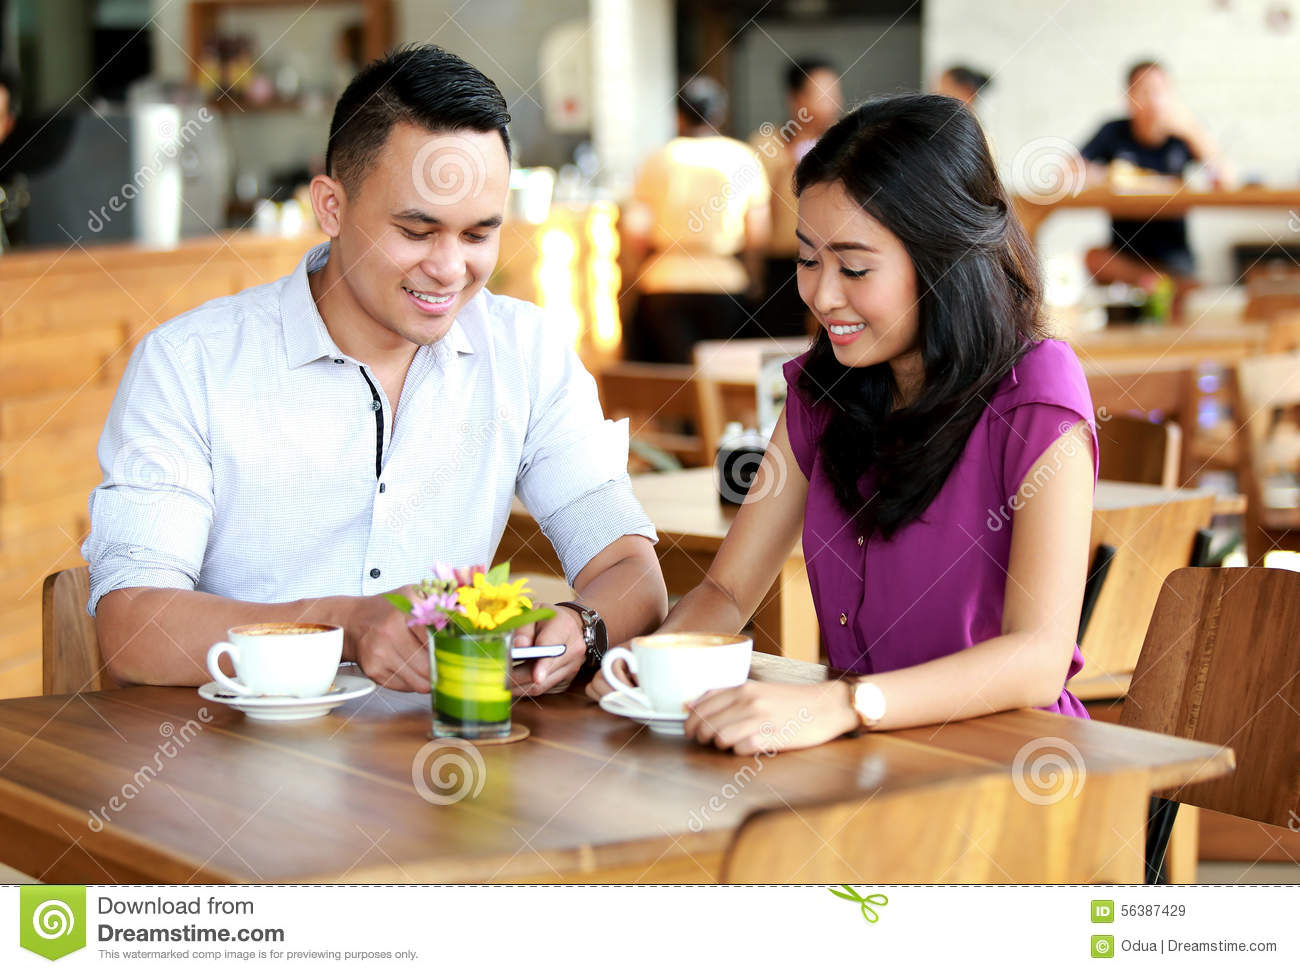 Dating at Coffee Shop - My Hidden Game